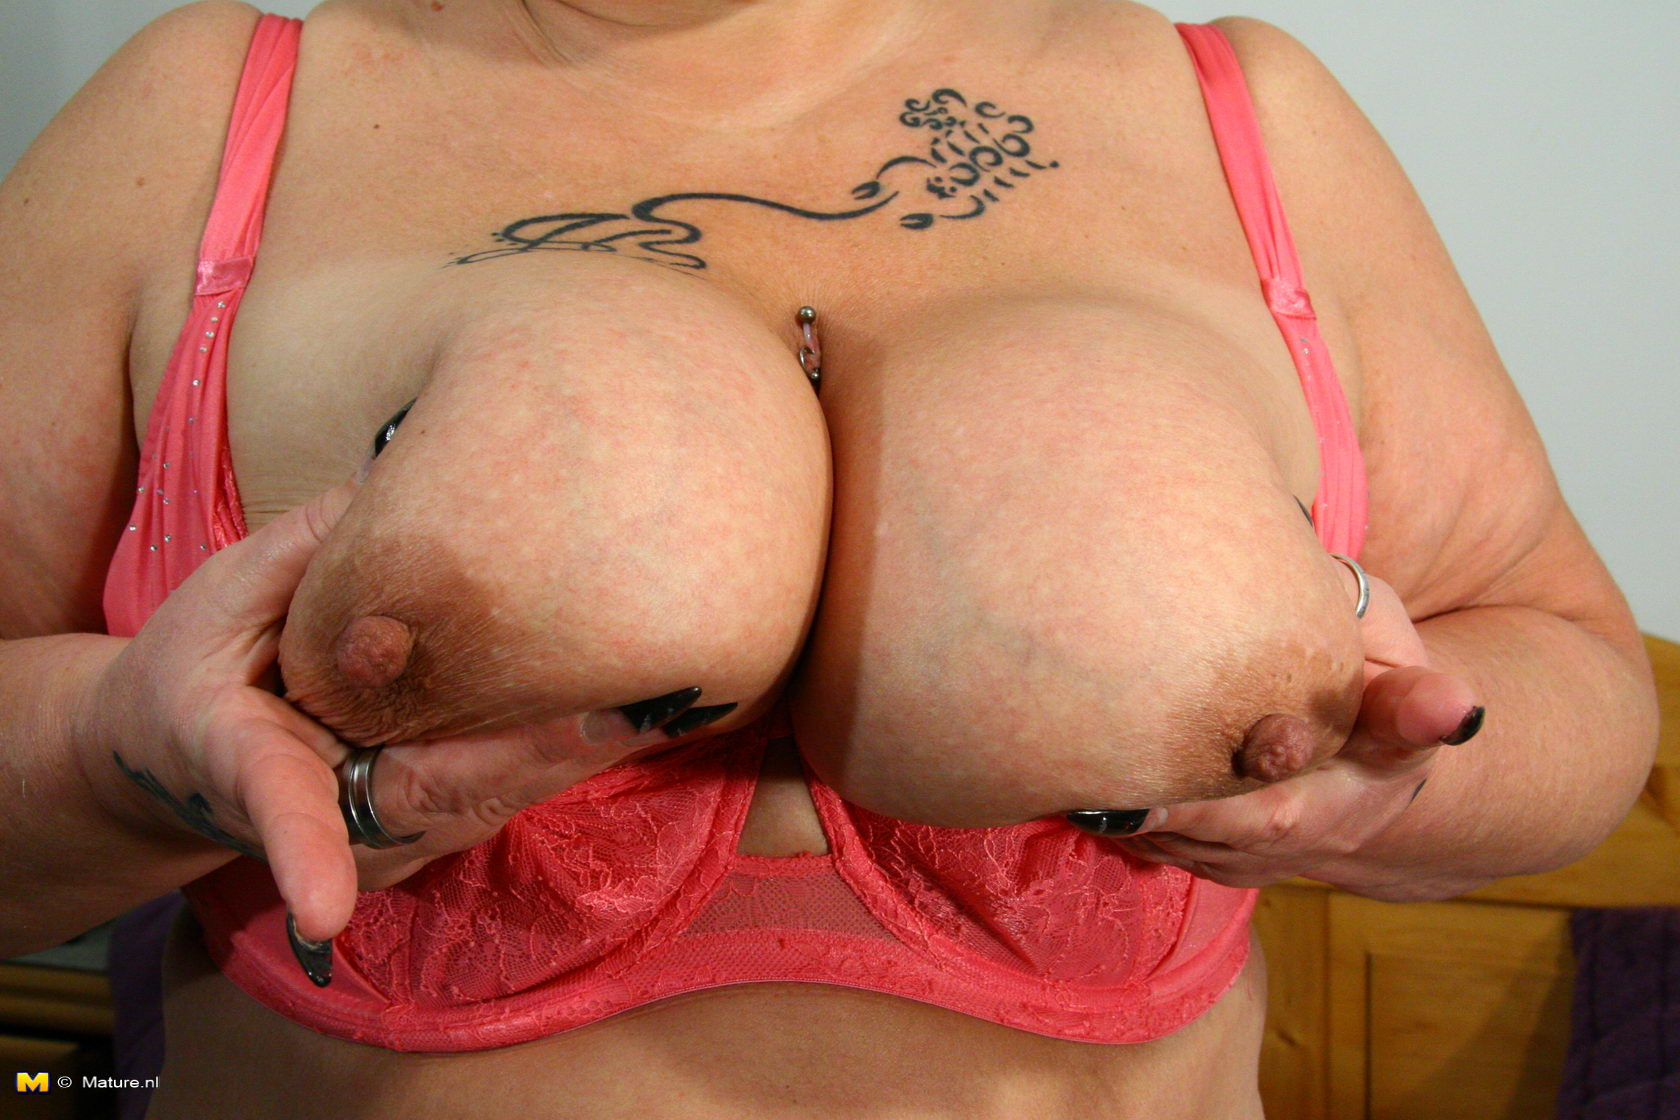 Big boobs getting played with pov 4